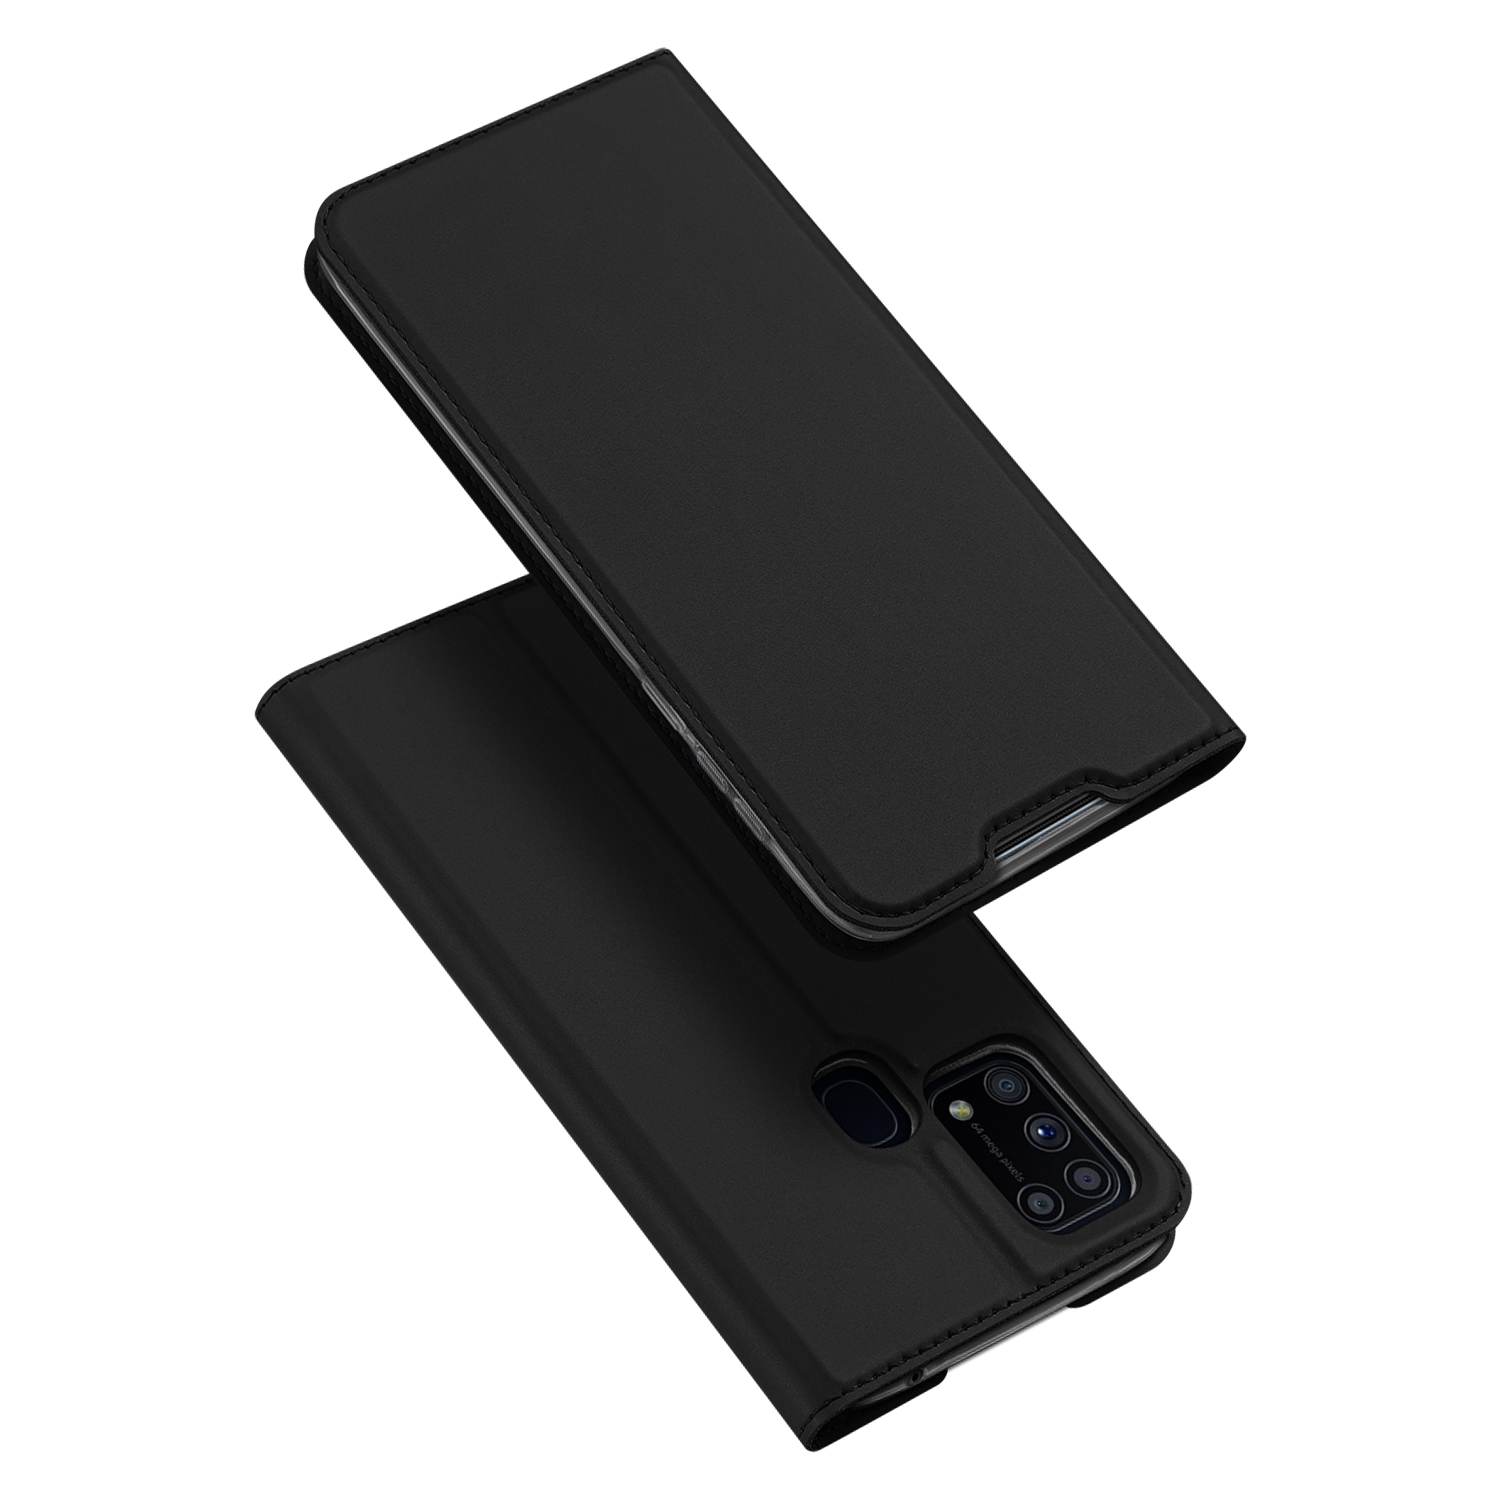 DUX DUCIS For Samsung M31 Leather Mobile Phone Cover Magnetic Protective Case Bracket with Cards Slot black